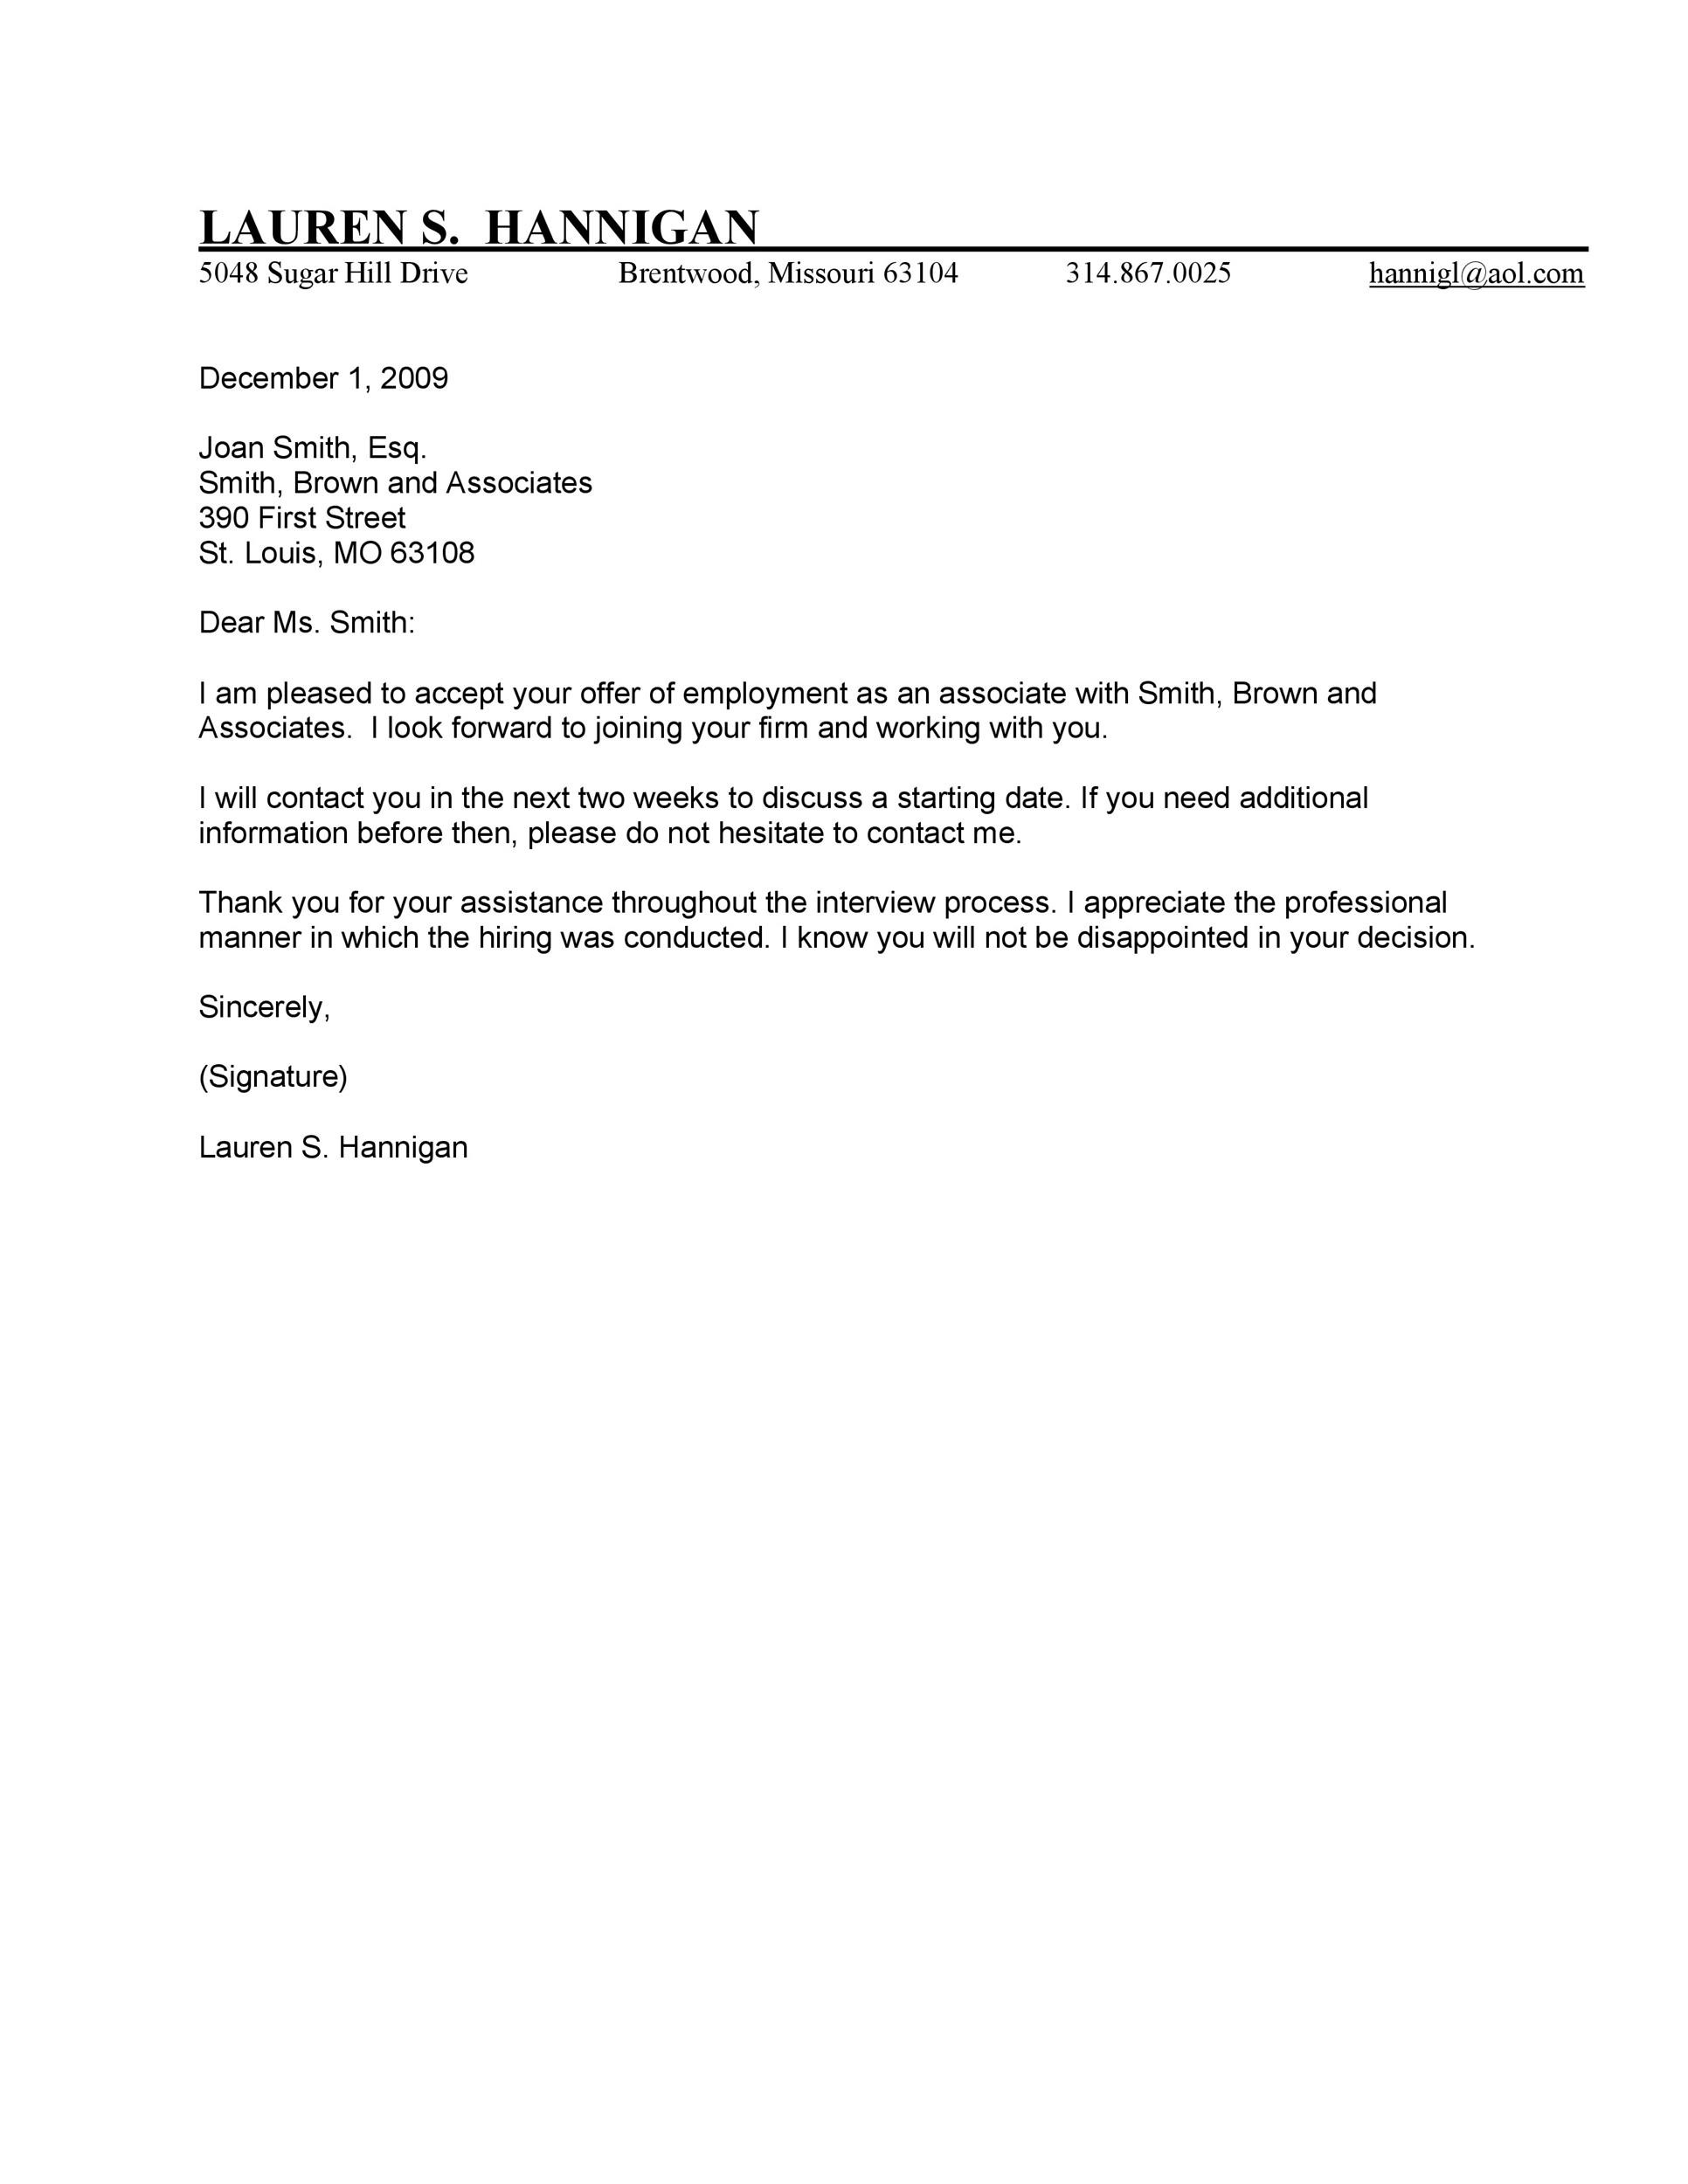 employment offer letter template 40 professional offer acceptance letter amp email 21501